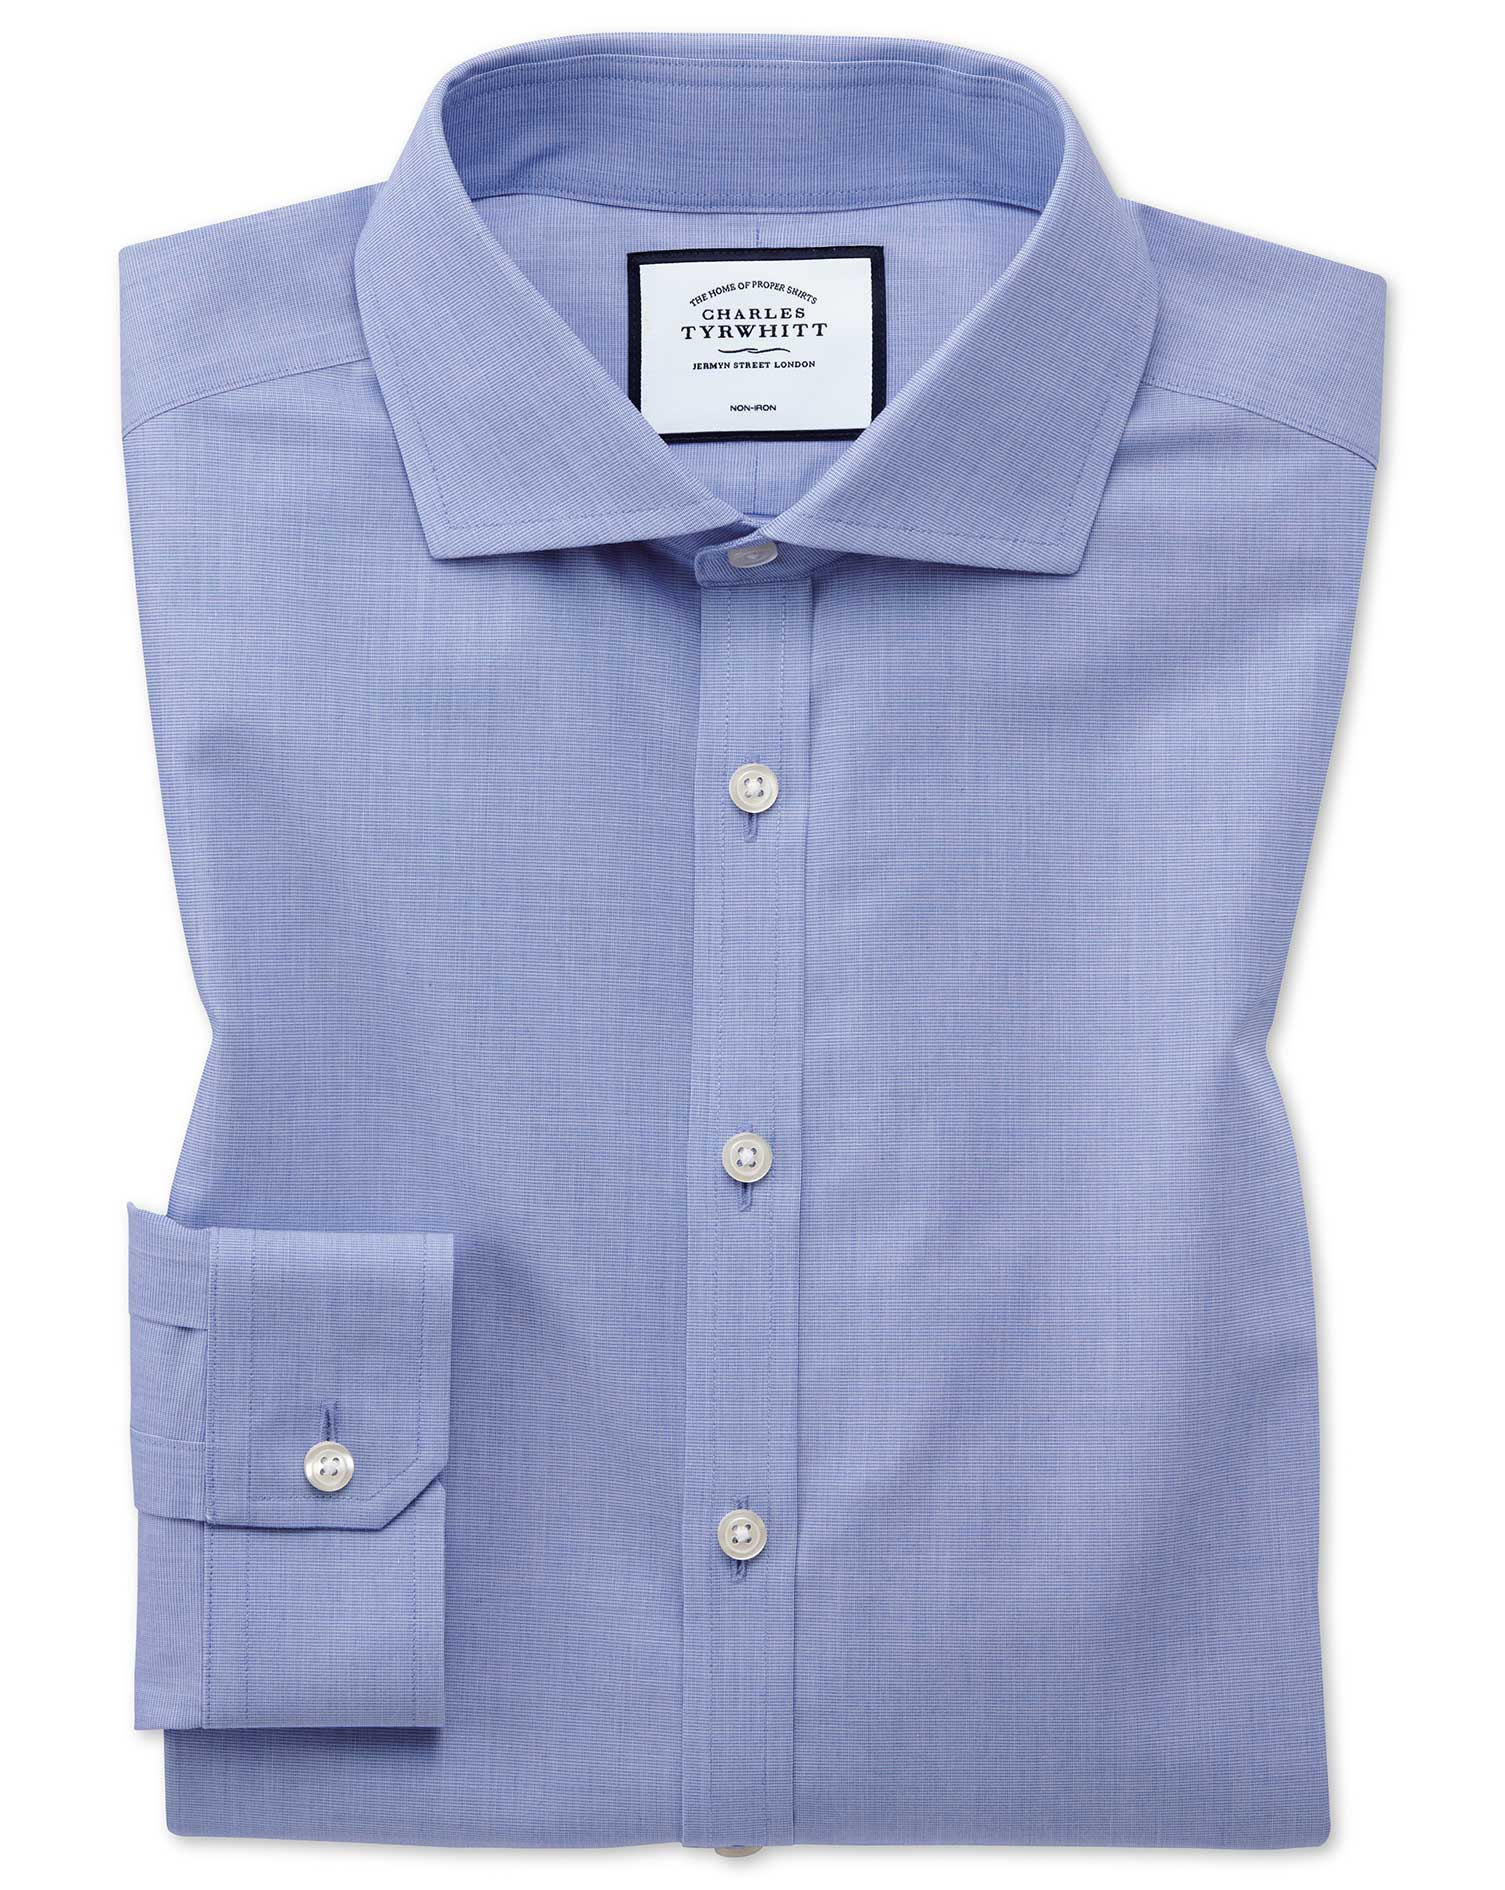 Super Slim Fit Non-Iron 4-Way Stretch Blue Cotton Formal Shirt Single Cuff Size 16/36 by Charles Tyr